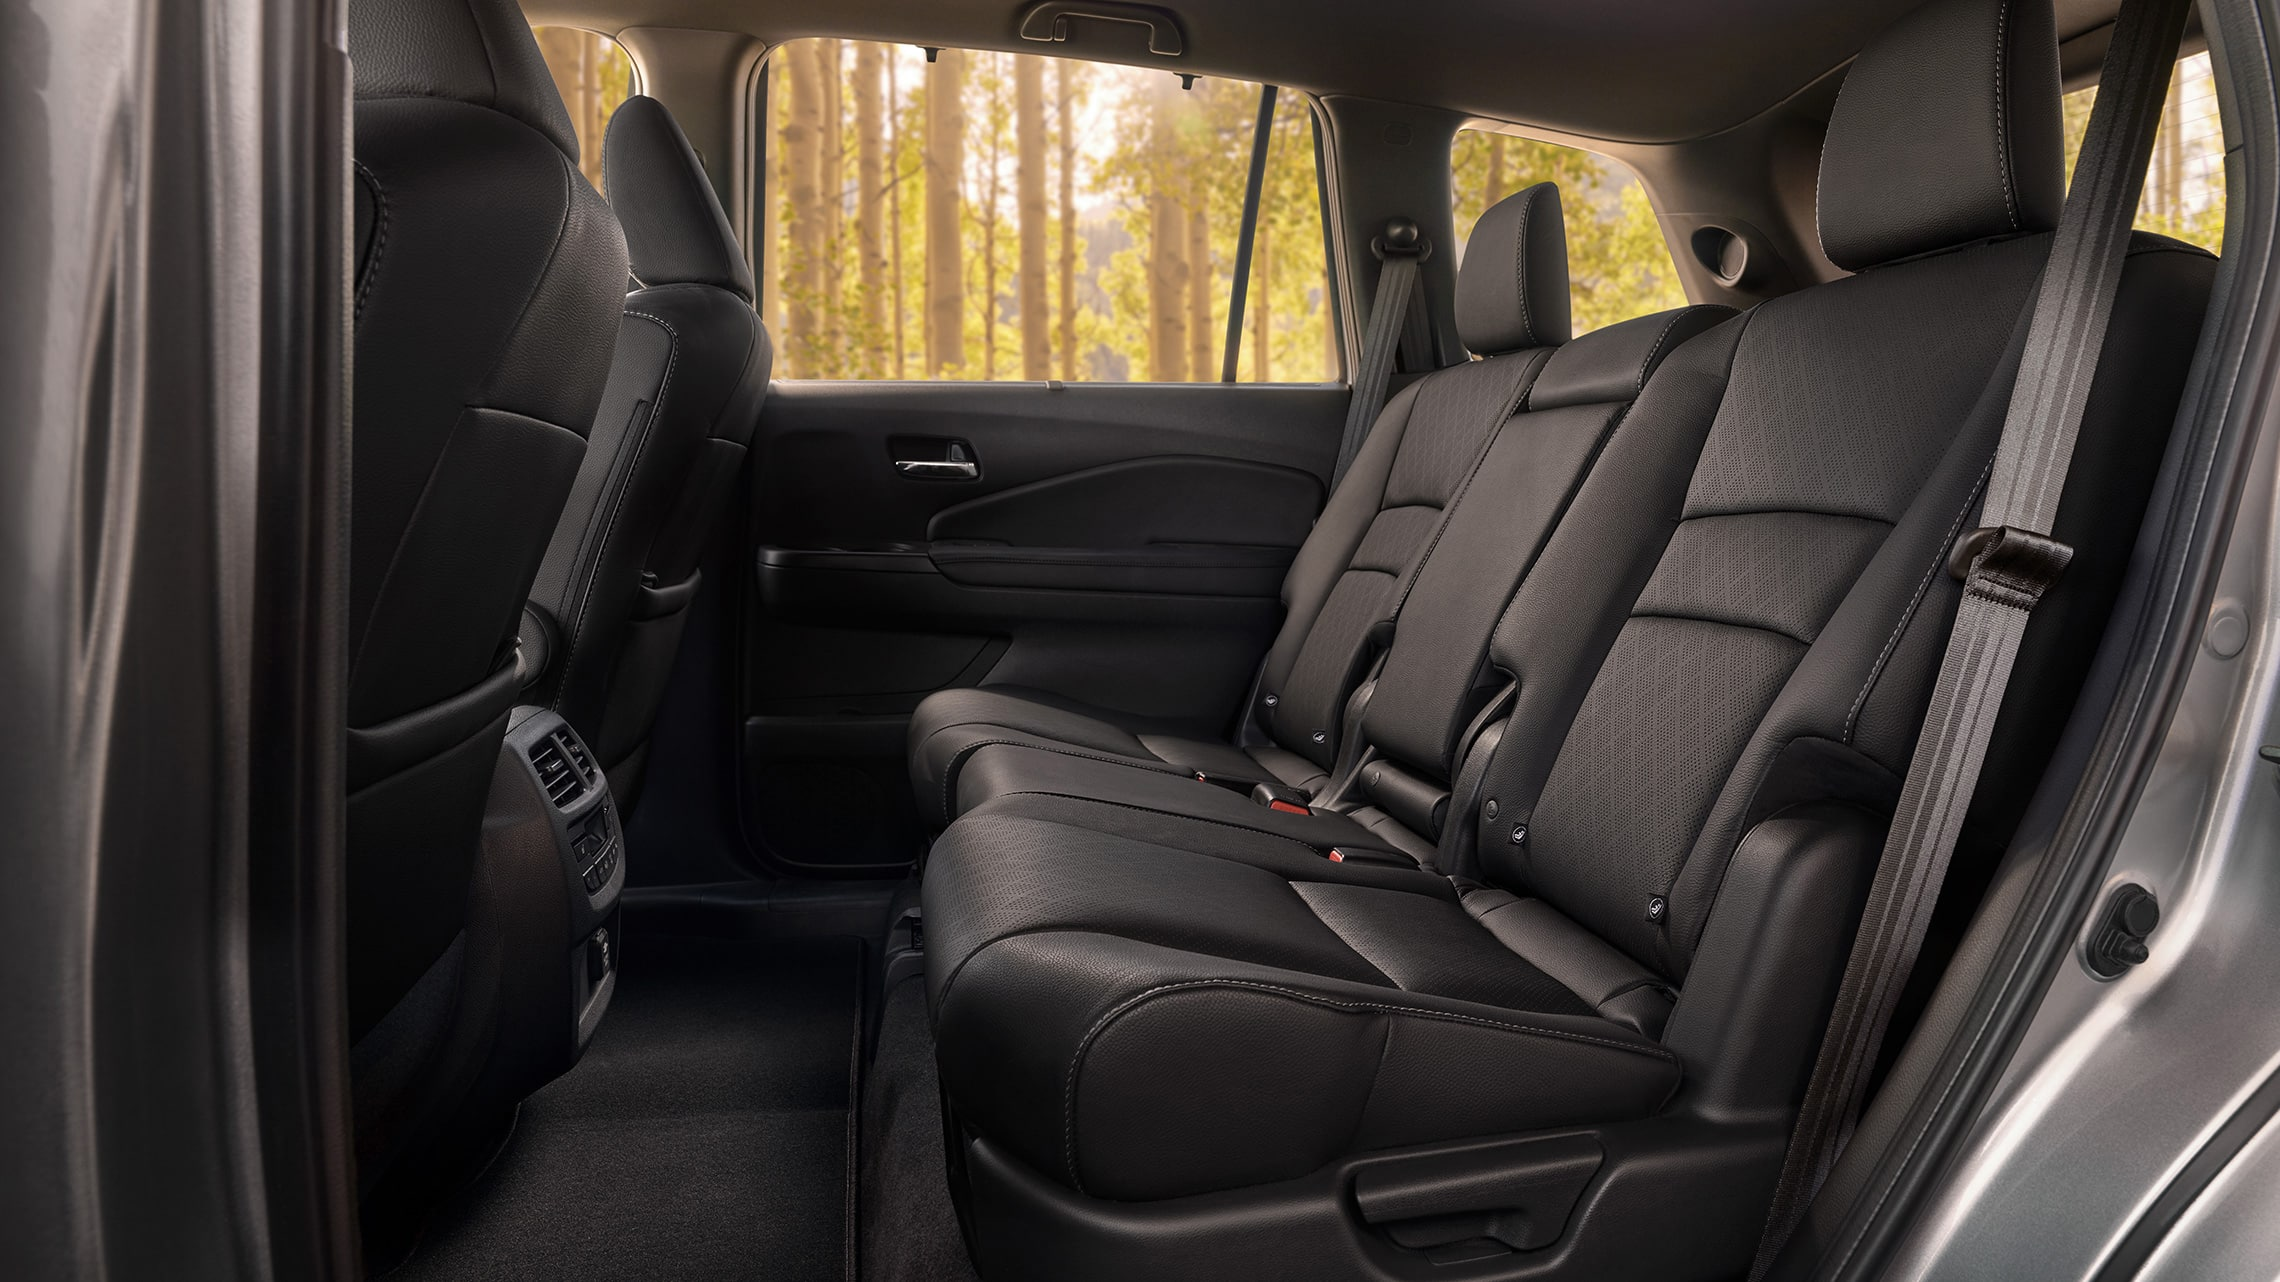 Driver-side profile view of the second-row seats in the 2021 Honda Passport Elite with Black Leather.